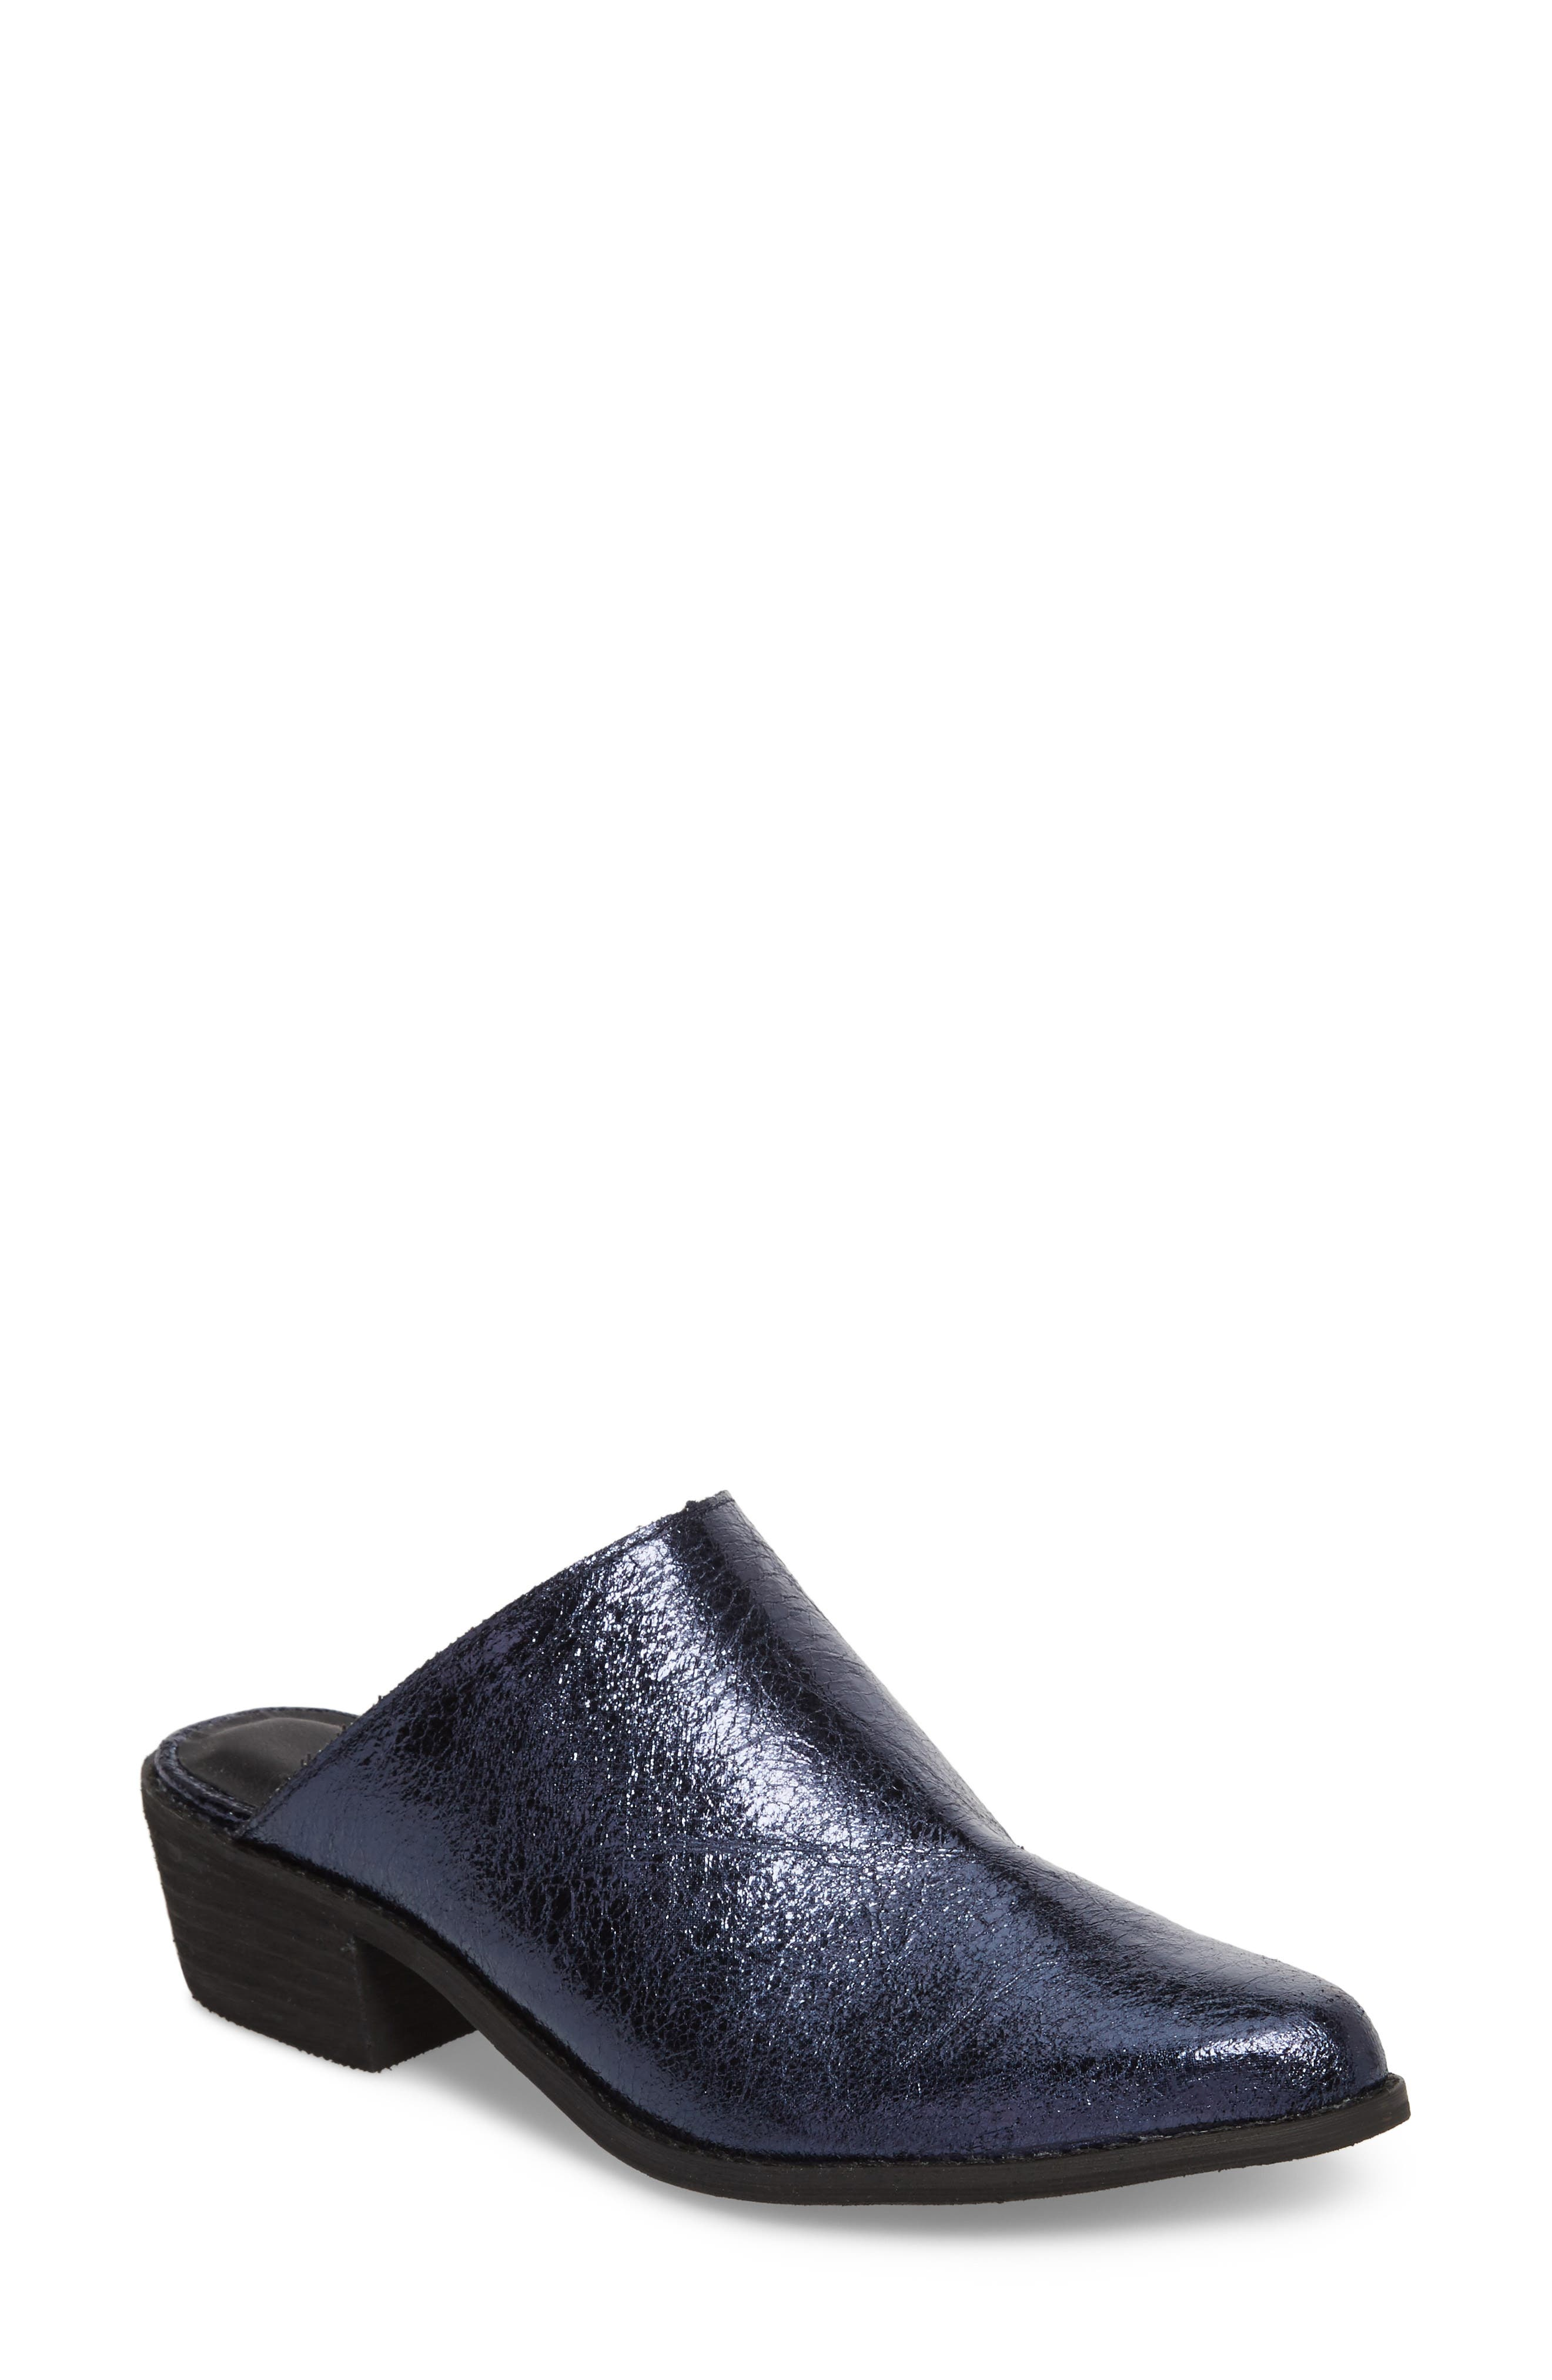 Finesse Mule,                             Main thumbnail 1, color,                             Navy